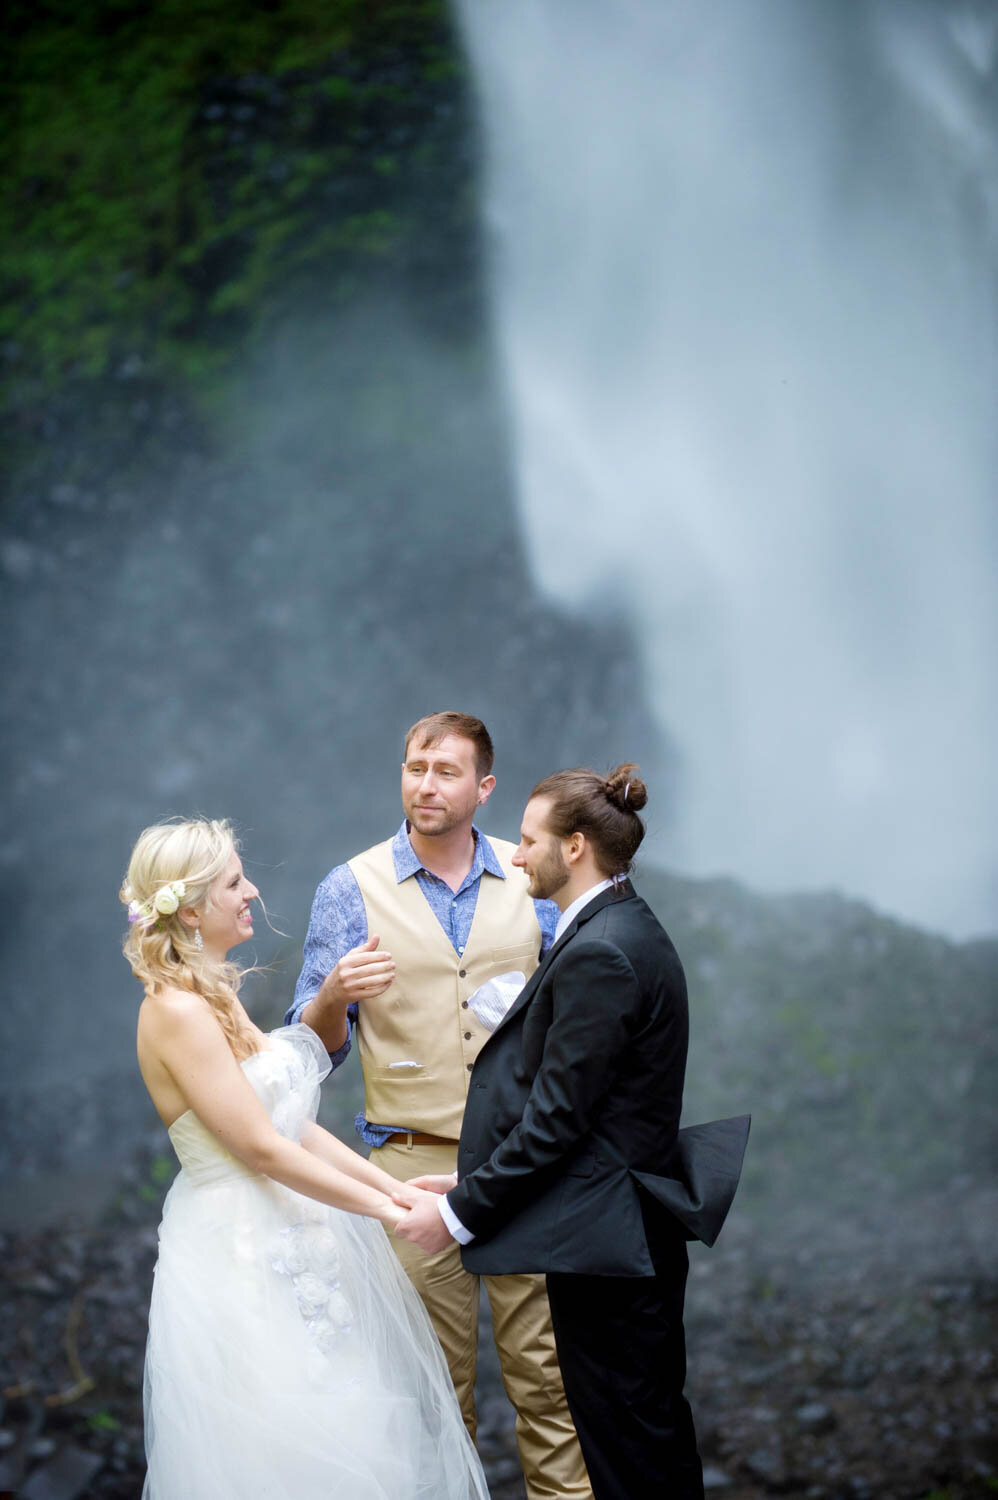 latourell falls wedding170421-8